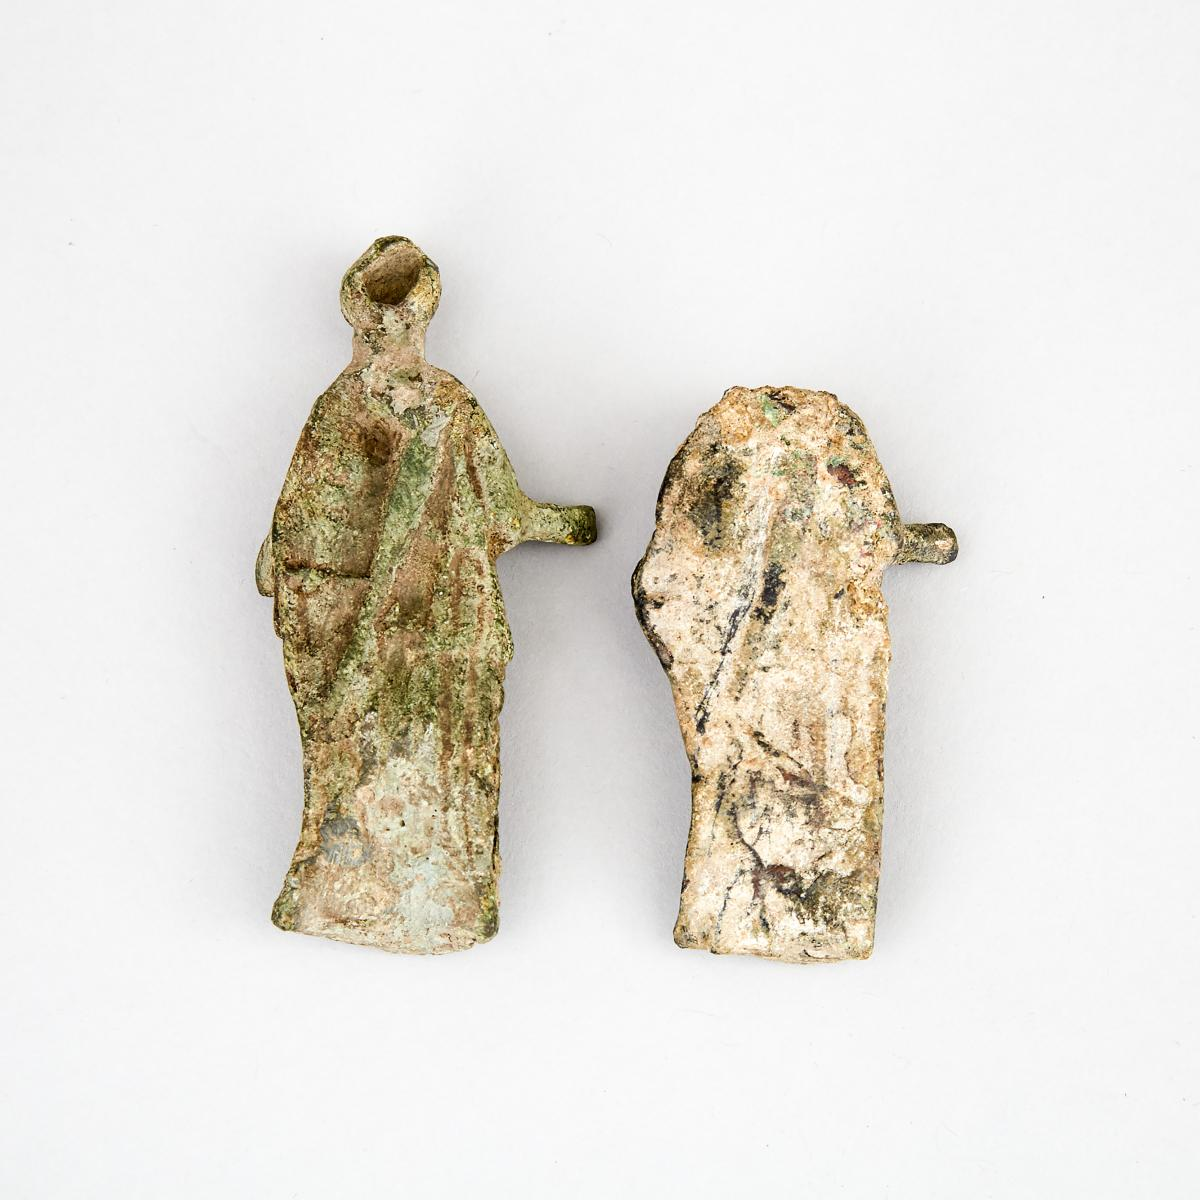 Two Roman Bronze Figures of Athena, 1st-2nd century A.D., height 3.75 in — 9.5 cm - Image 2 of 2